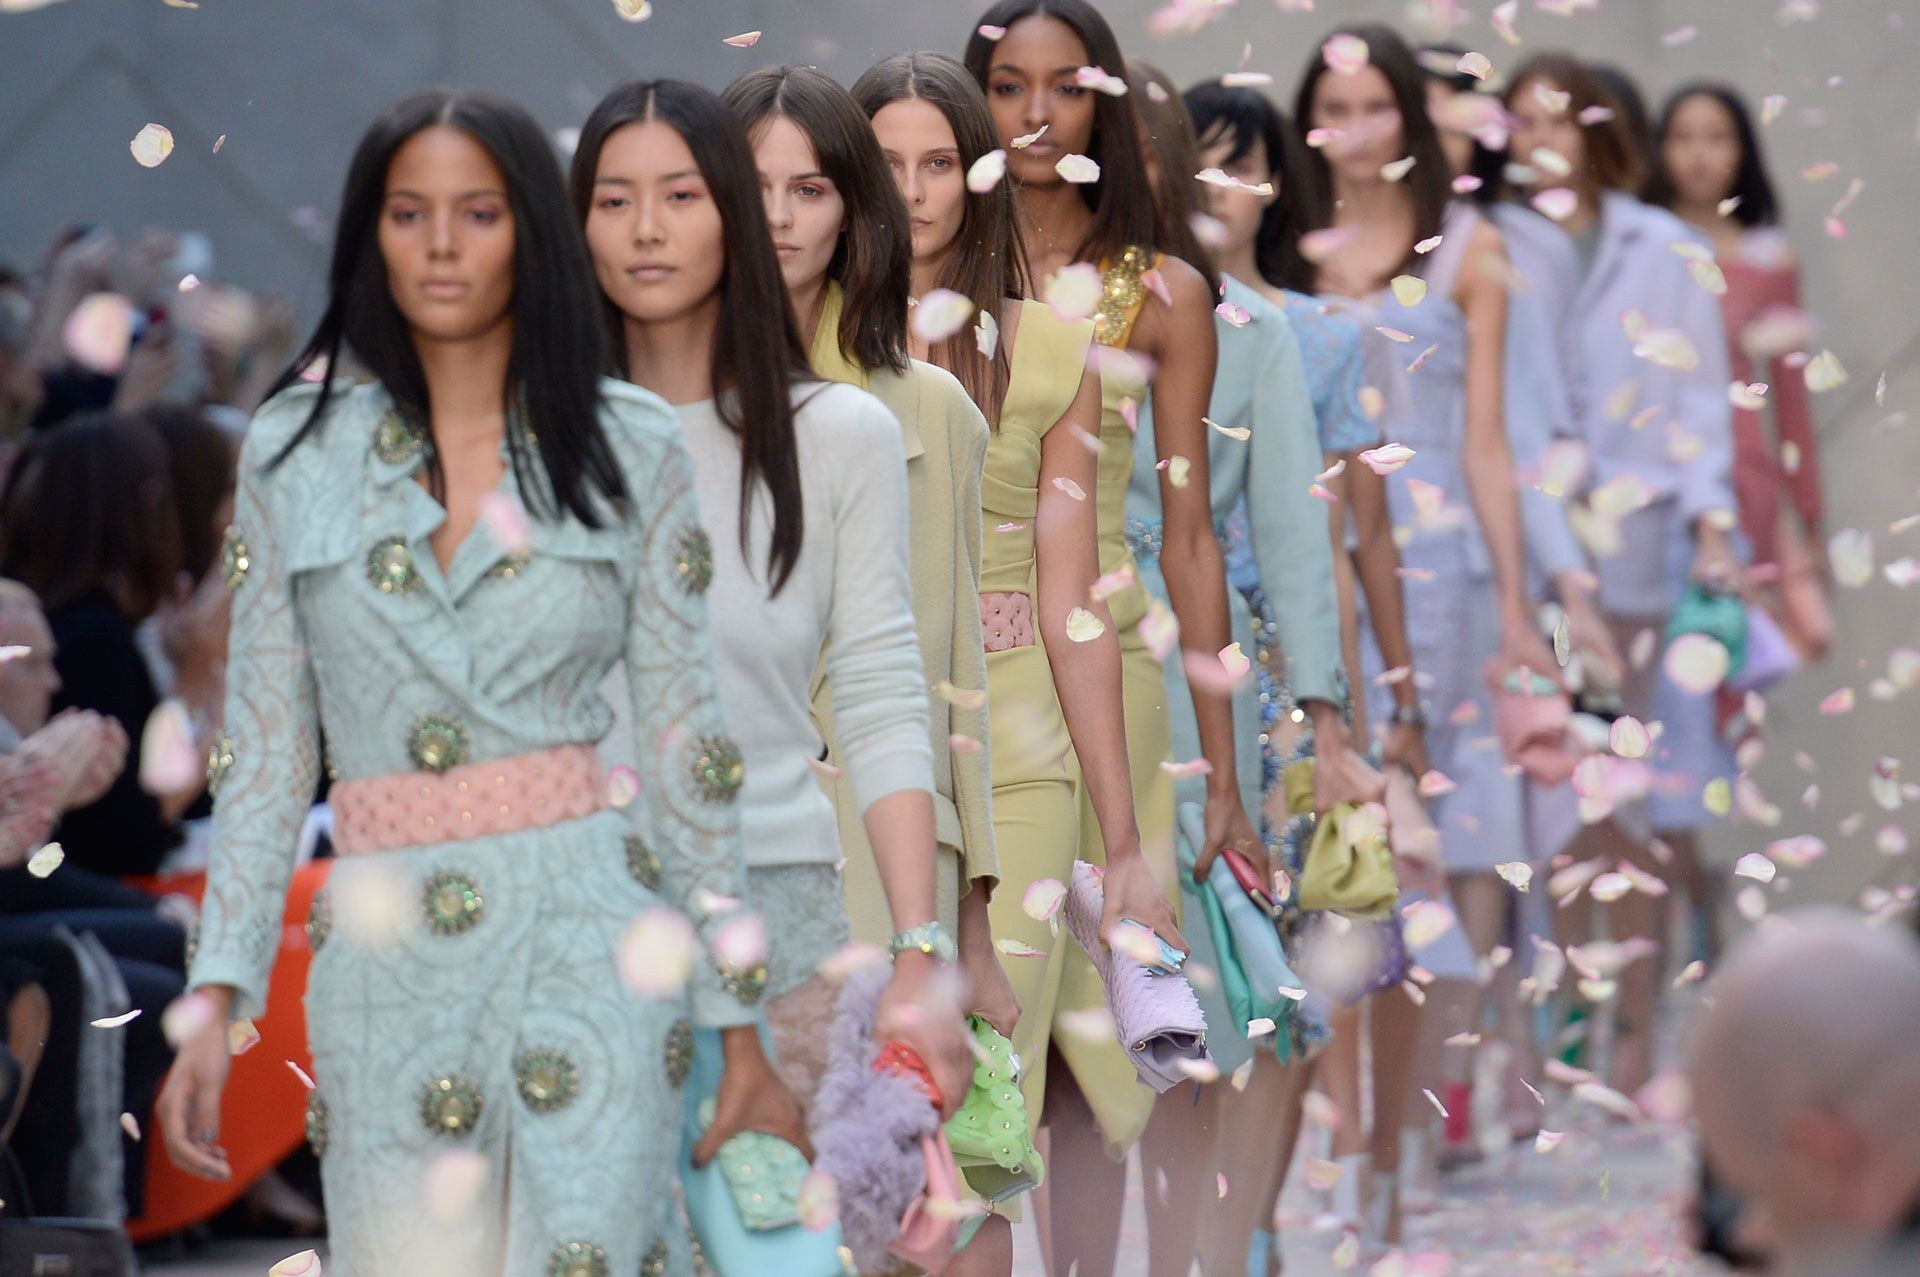 How to Wear Pastels - Pastel Colors Outfit Ideas